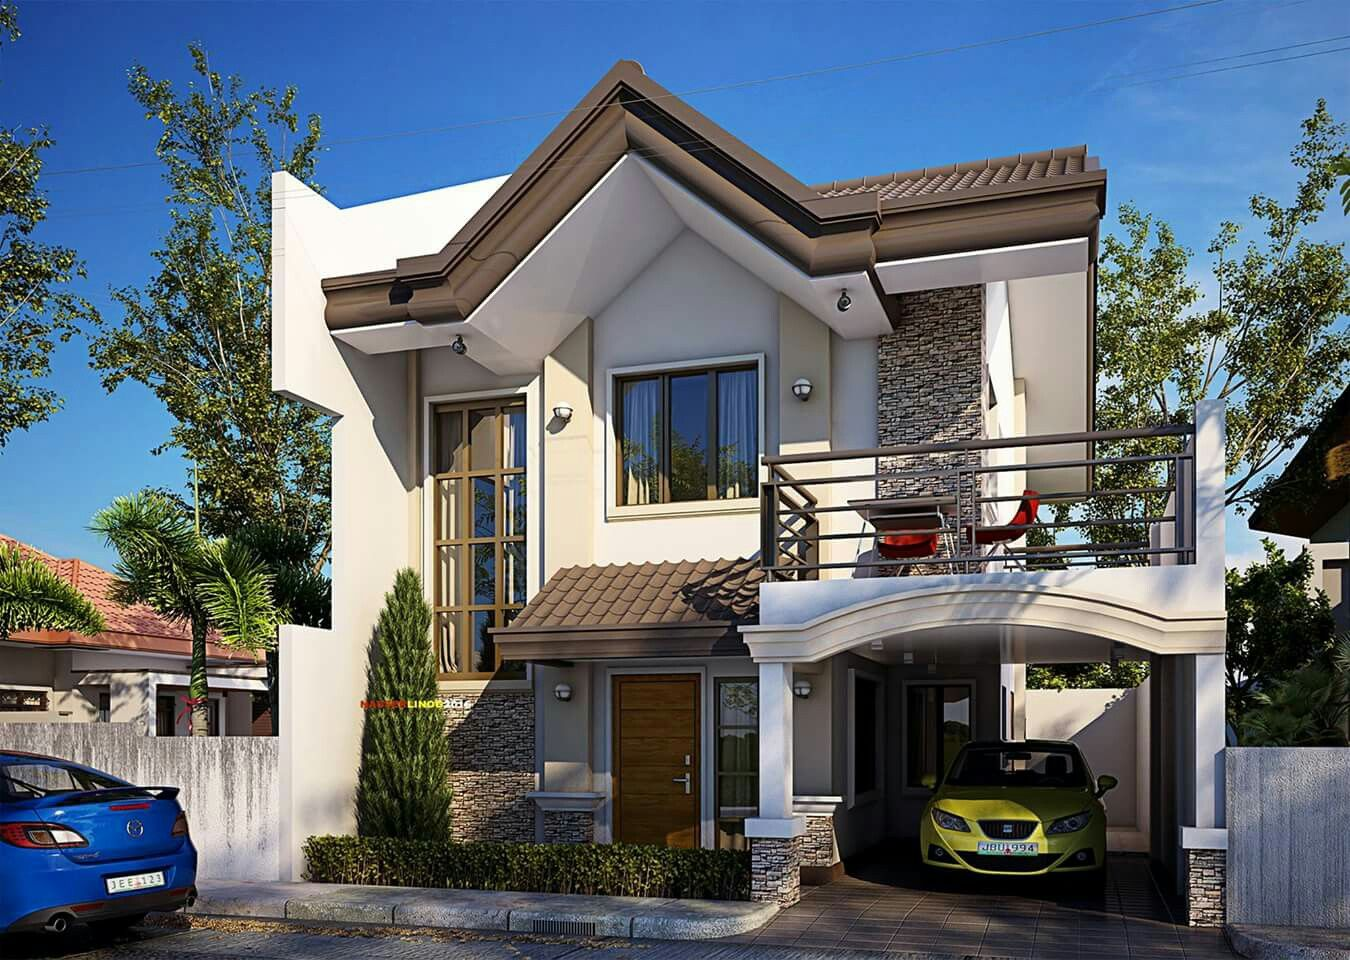 Pin By Kgee Gee On Houses Philippines House Design Maine House